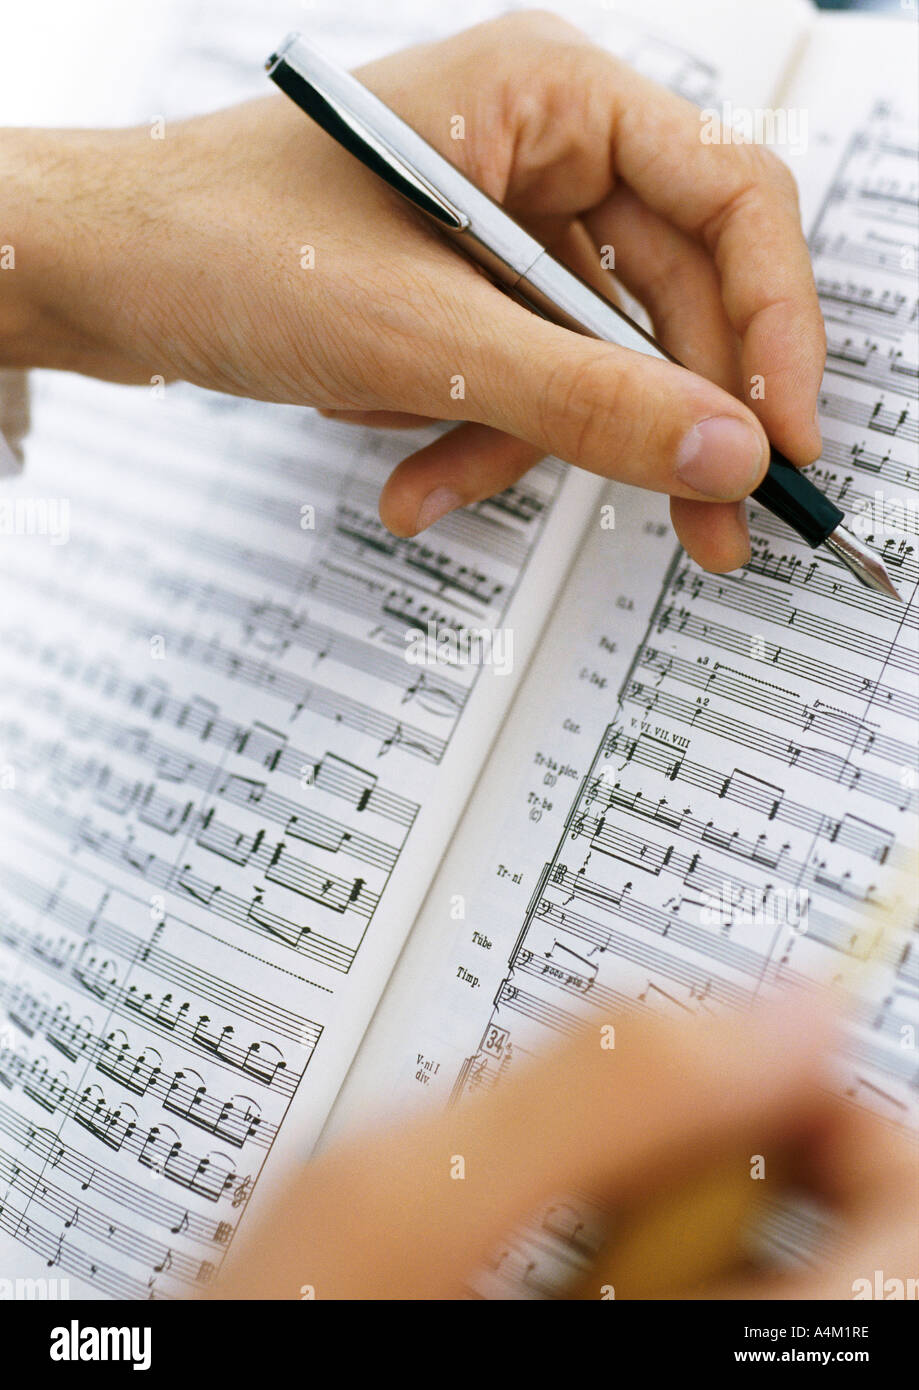 Hands writing on sheet music, close-up - Stock Image